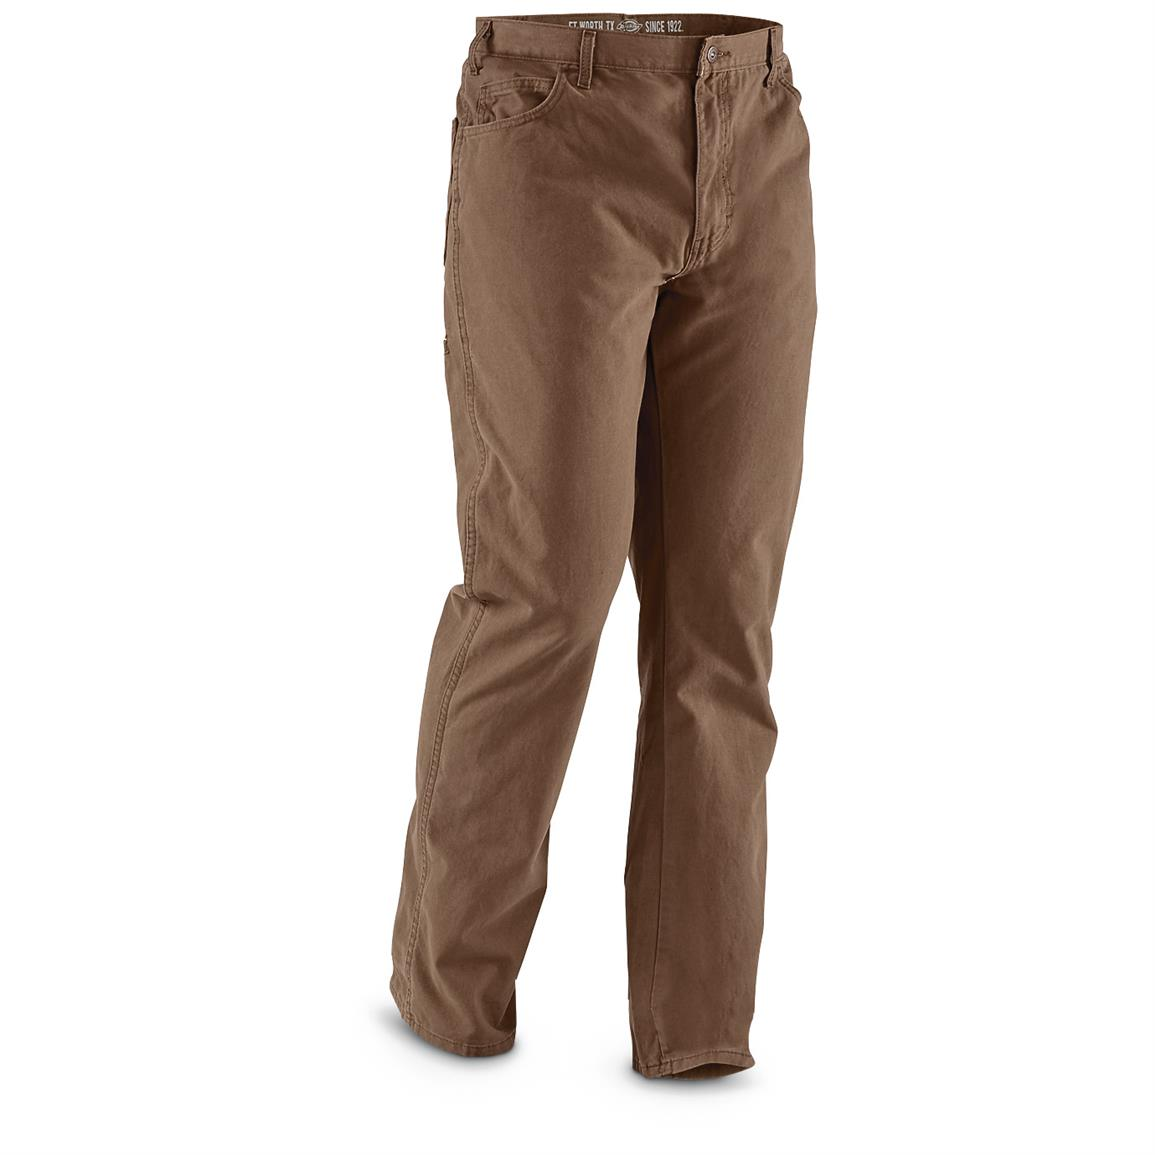 Dickies Men's 6-pocket Pants, Irregulars, Brown